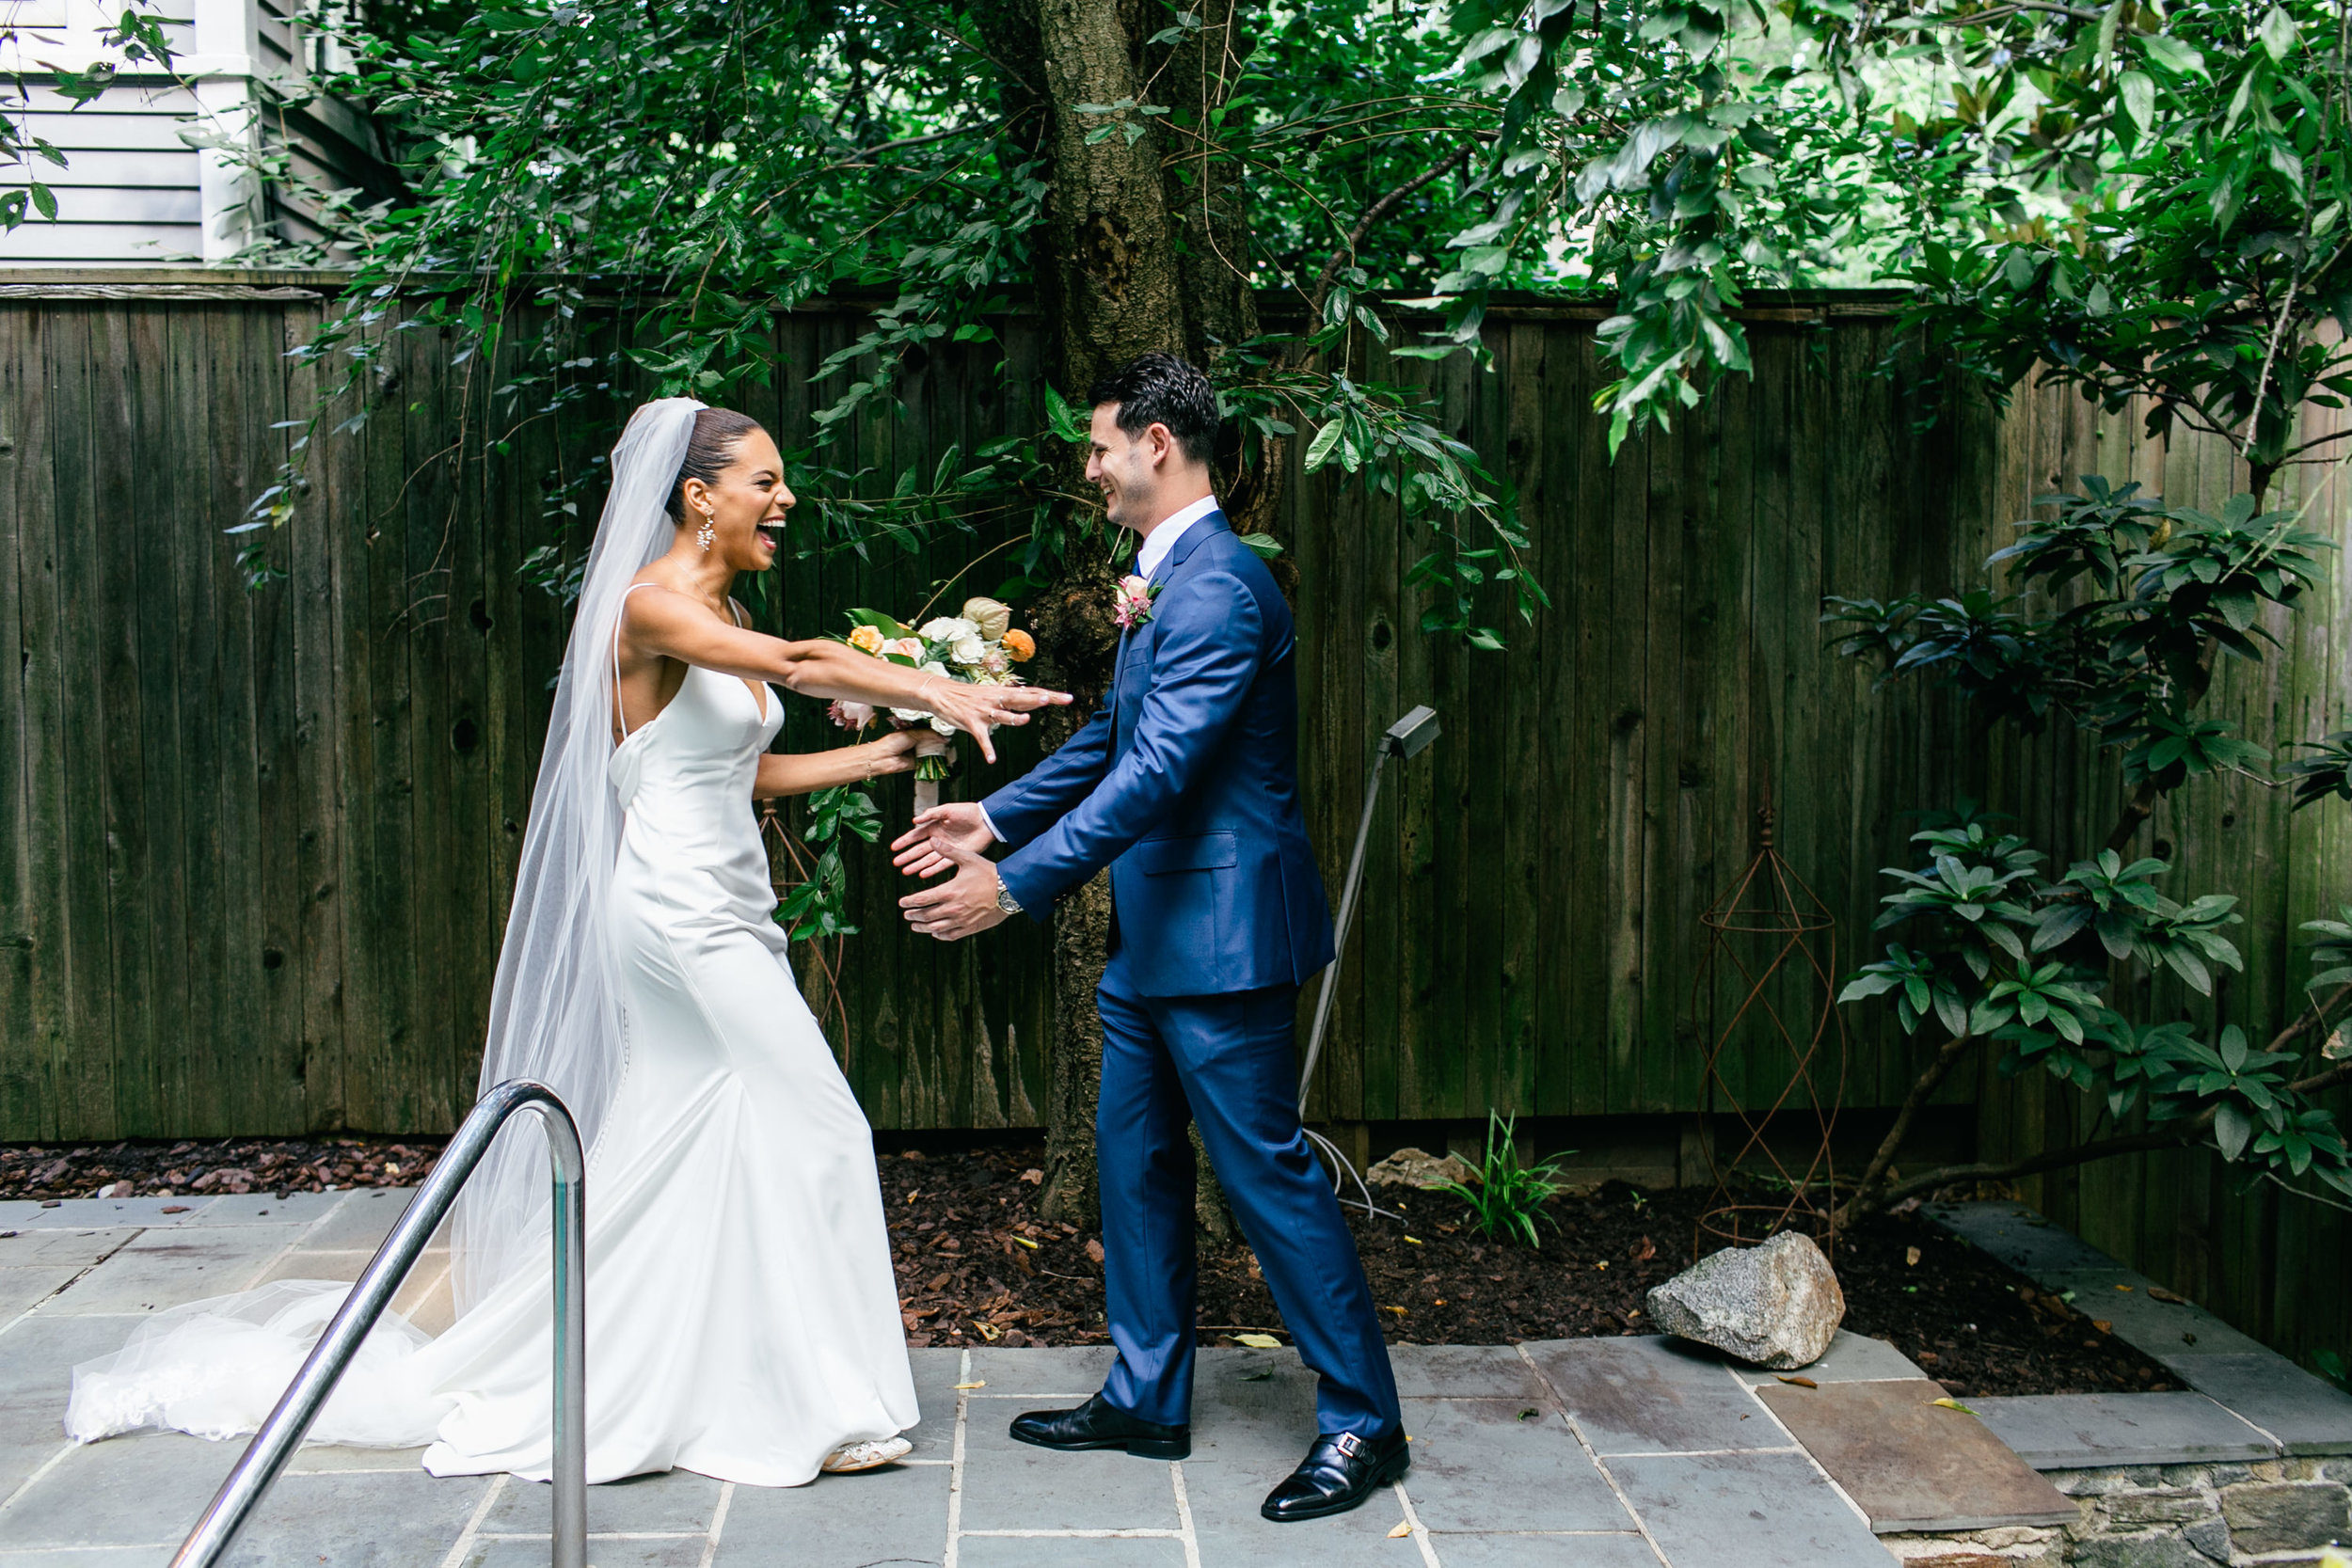 photography-wedding-weddings-natural-candid-dock 5 dc-washington dc-philadelphia-mixed race-editorial-modern-fine-art-003.JPG